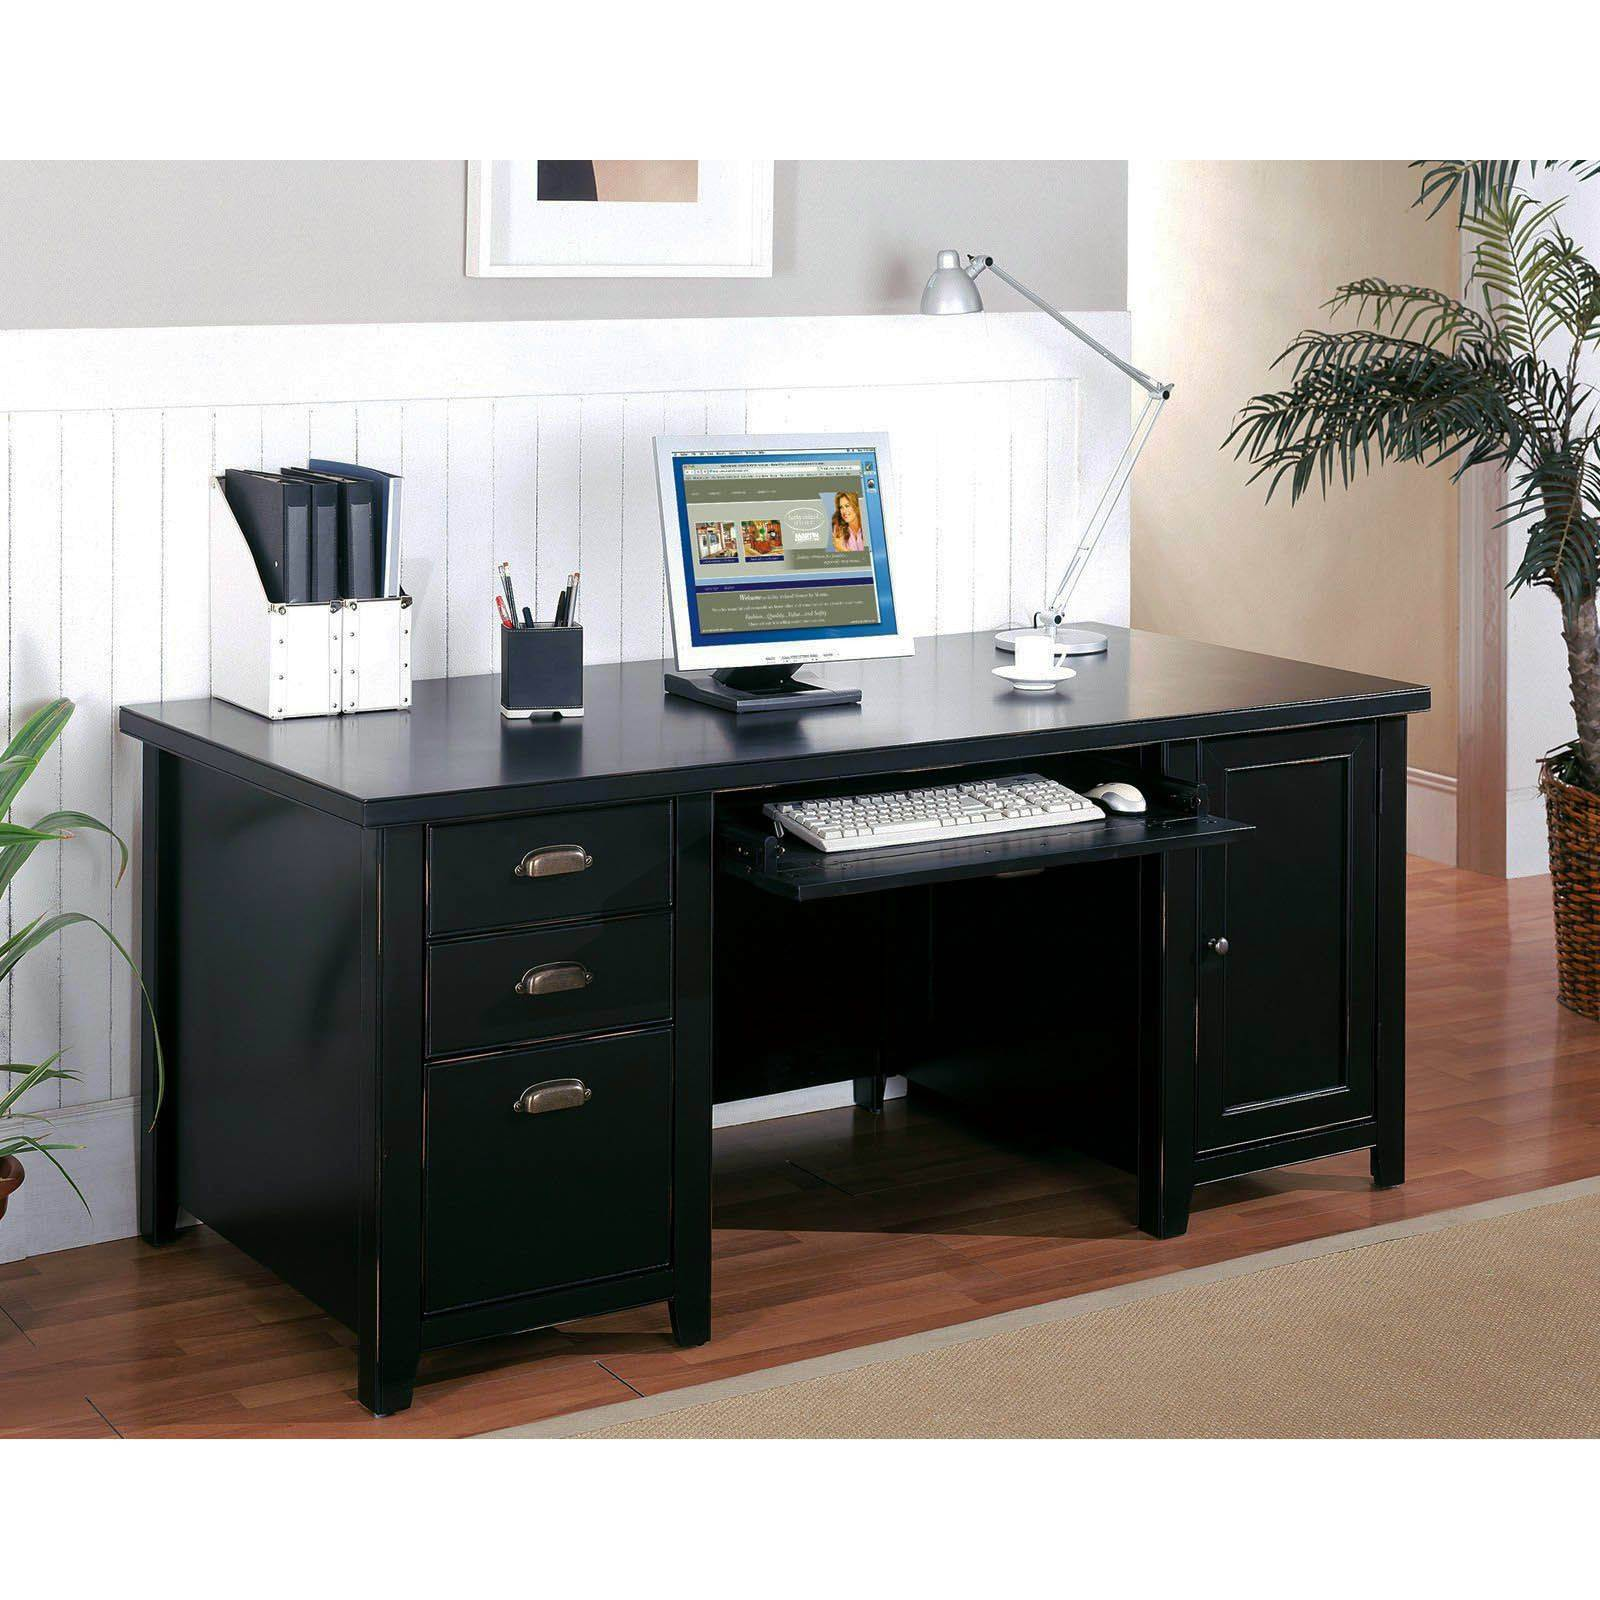 Beautiful Desk Beautiful Trendy Black Puter Desk with Printer Storage that Look